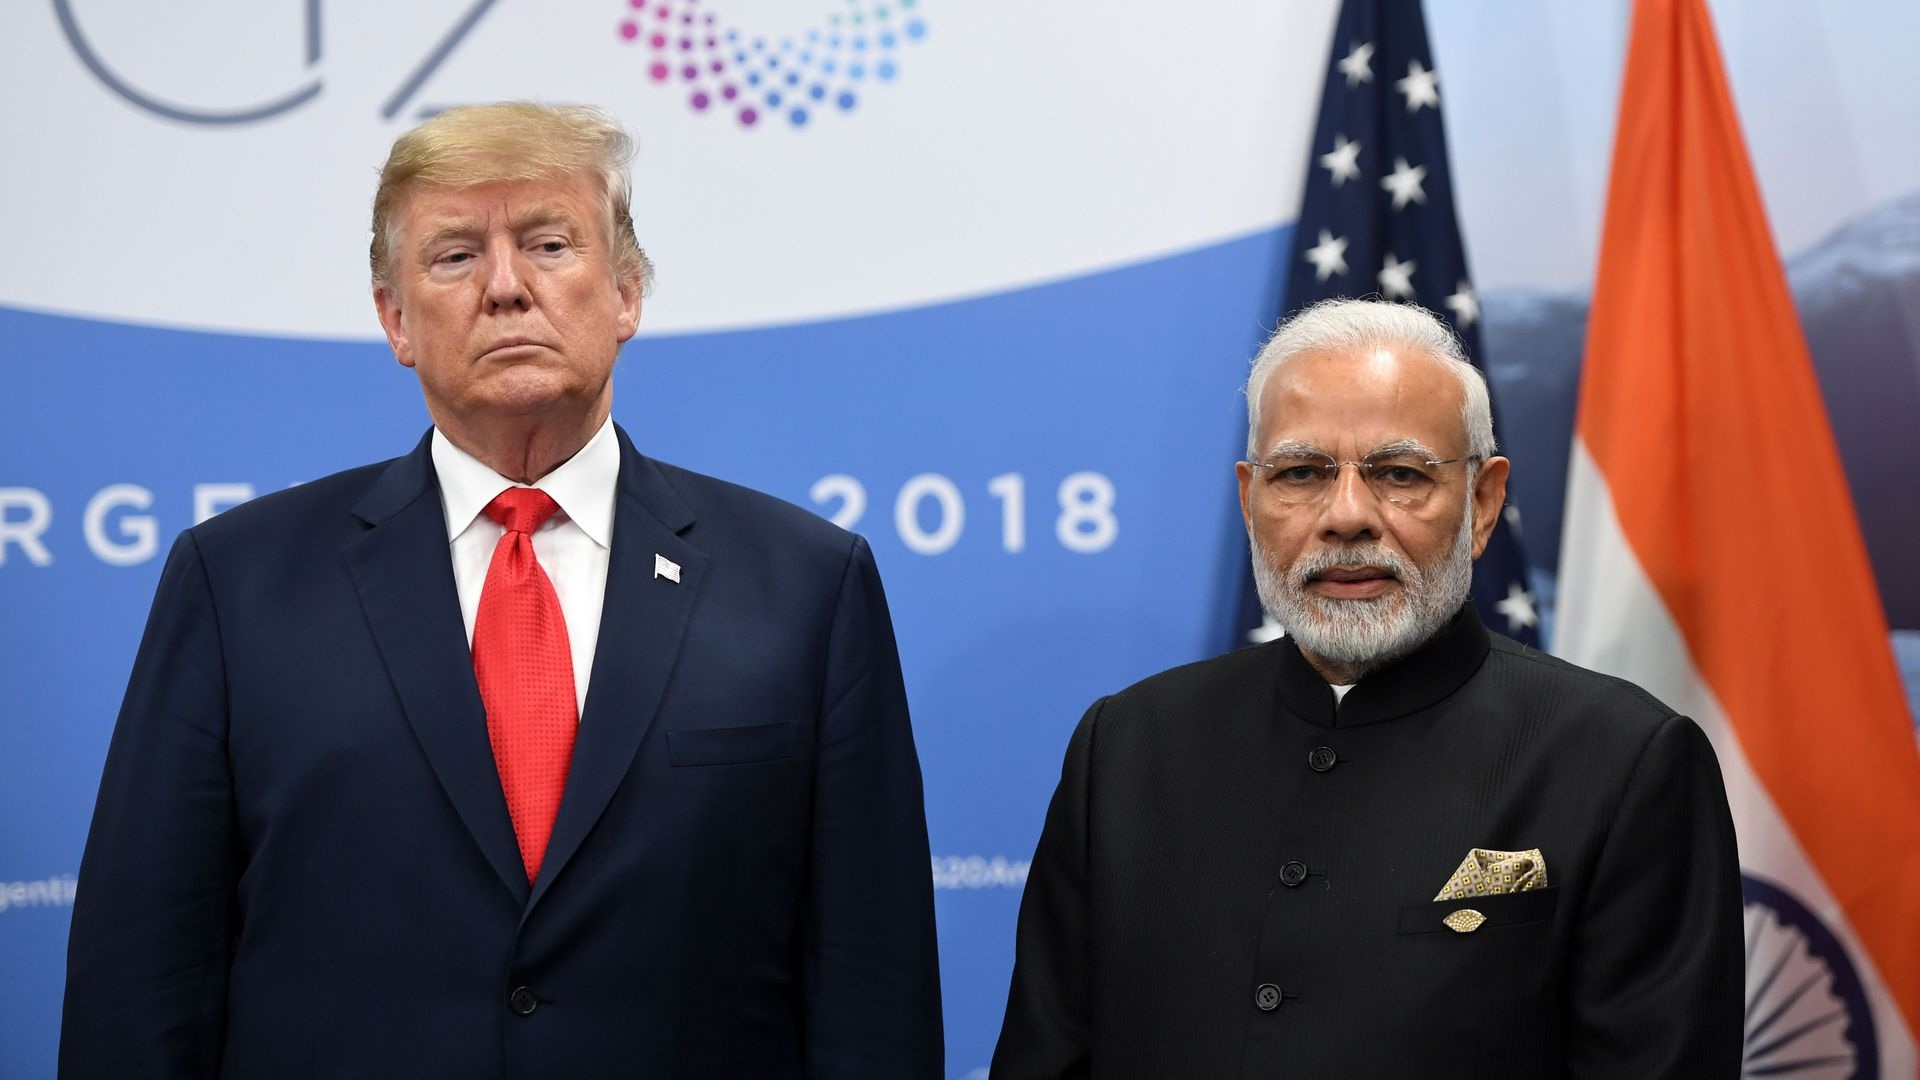 India's Prime Minister Narendra Modi (R) and US President Donald Trump during a meeting in the sidelines of the G20 Leaders' Summit in Buenos Aires, on November 30, 2018.